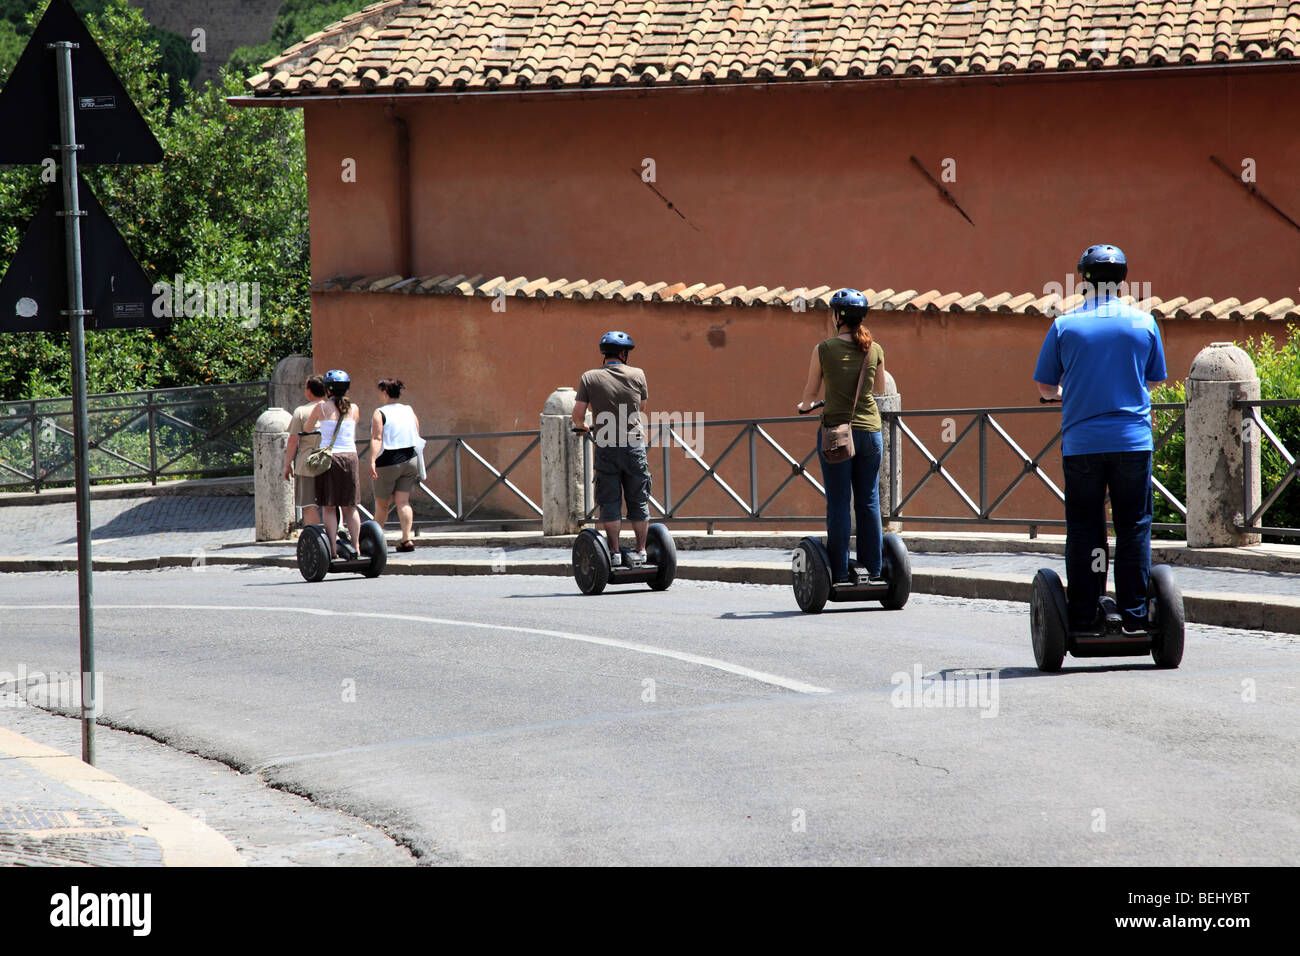 Riders on Segways in Rome - Stock Image